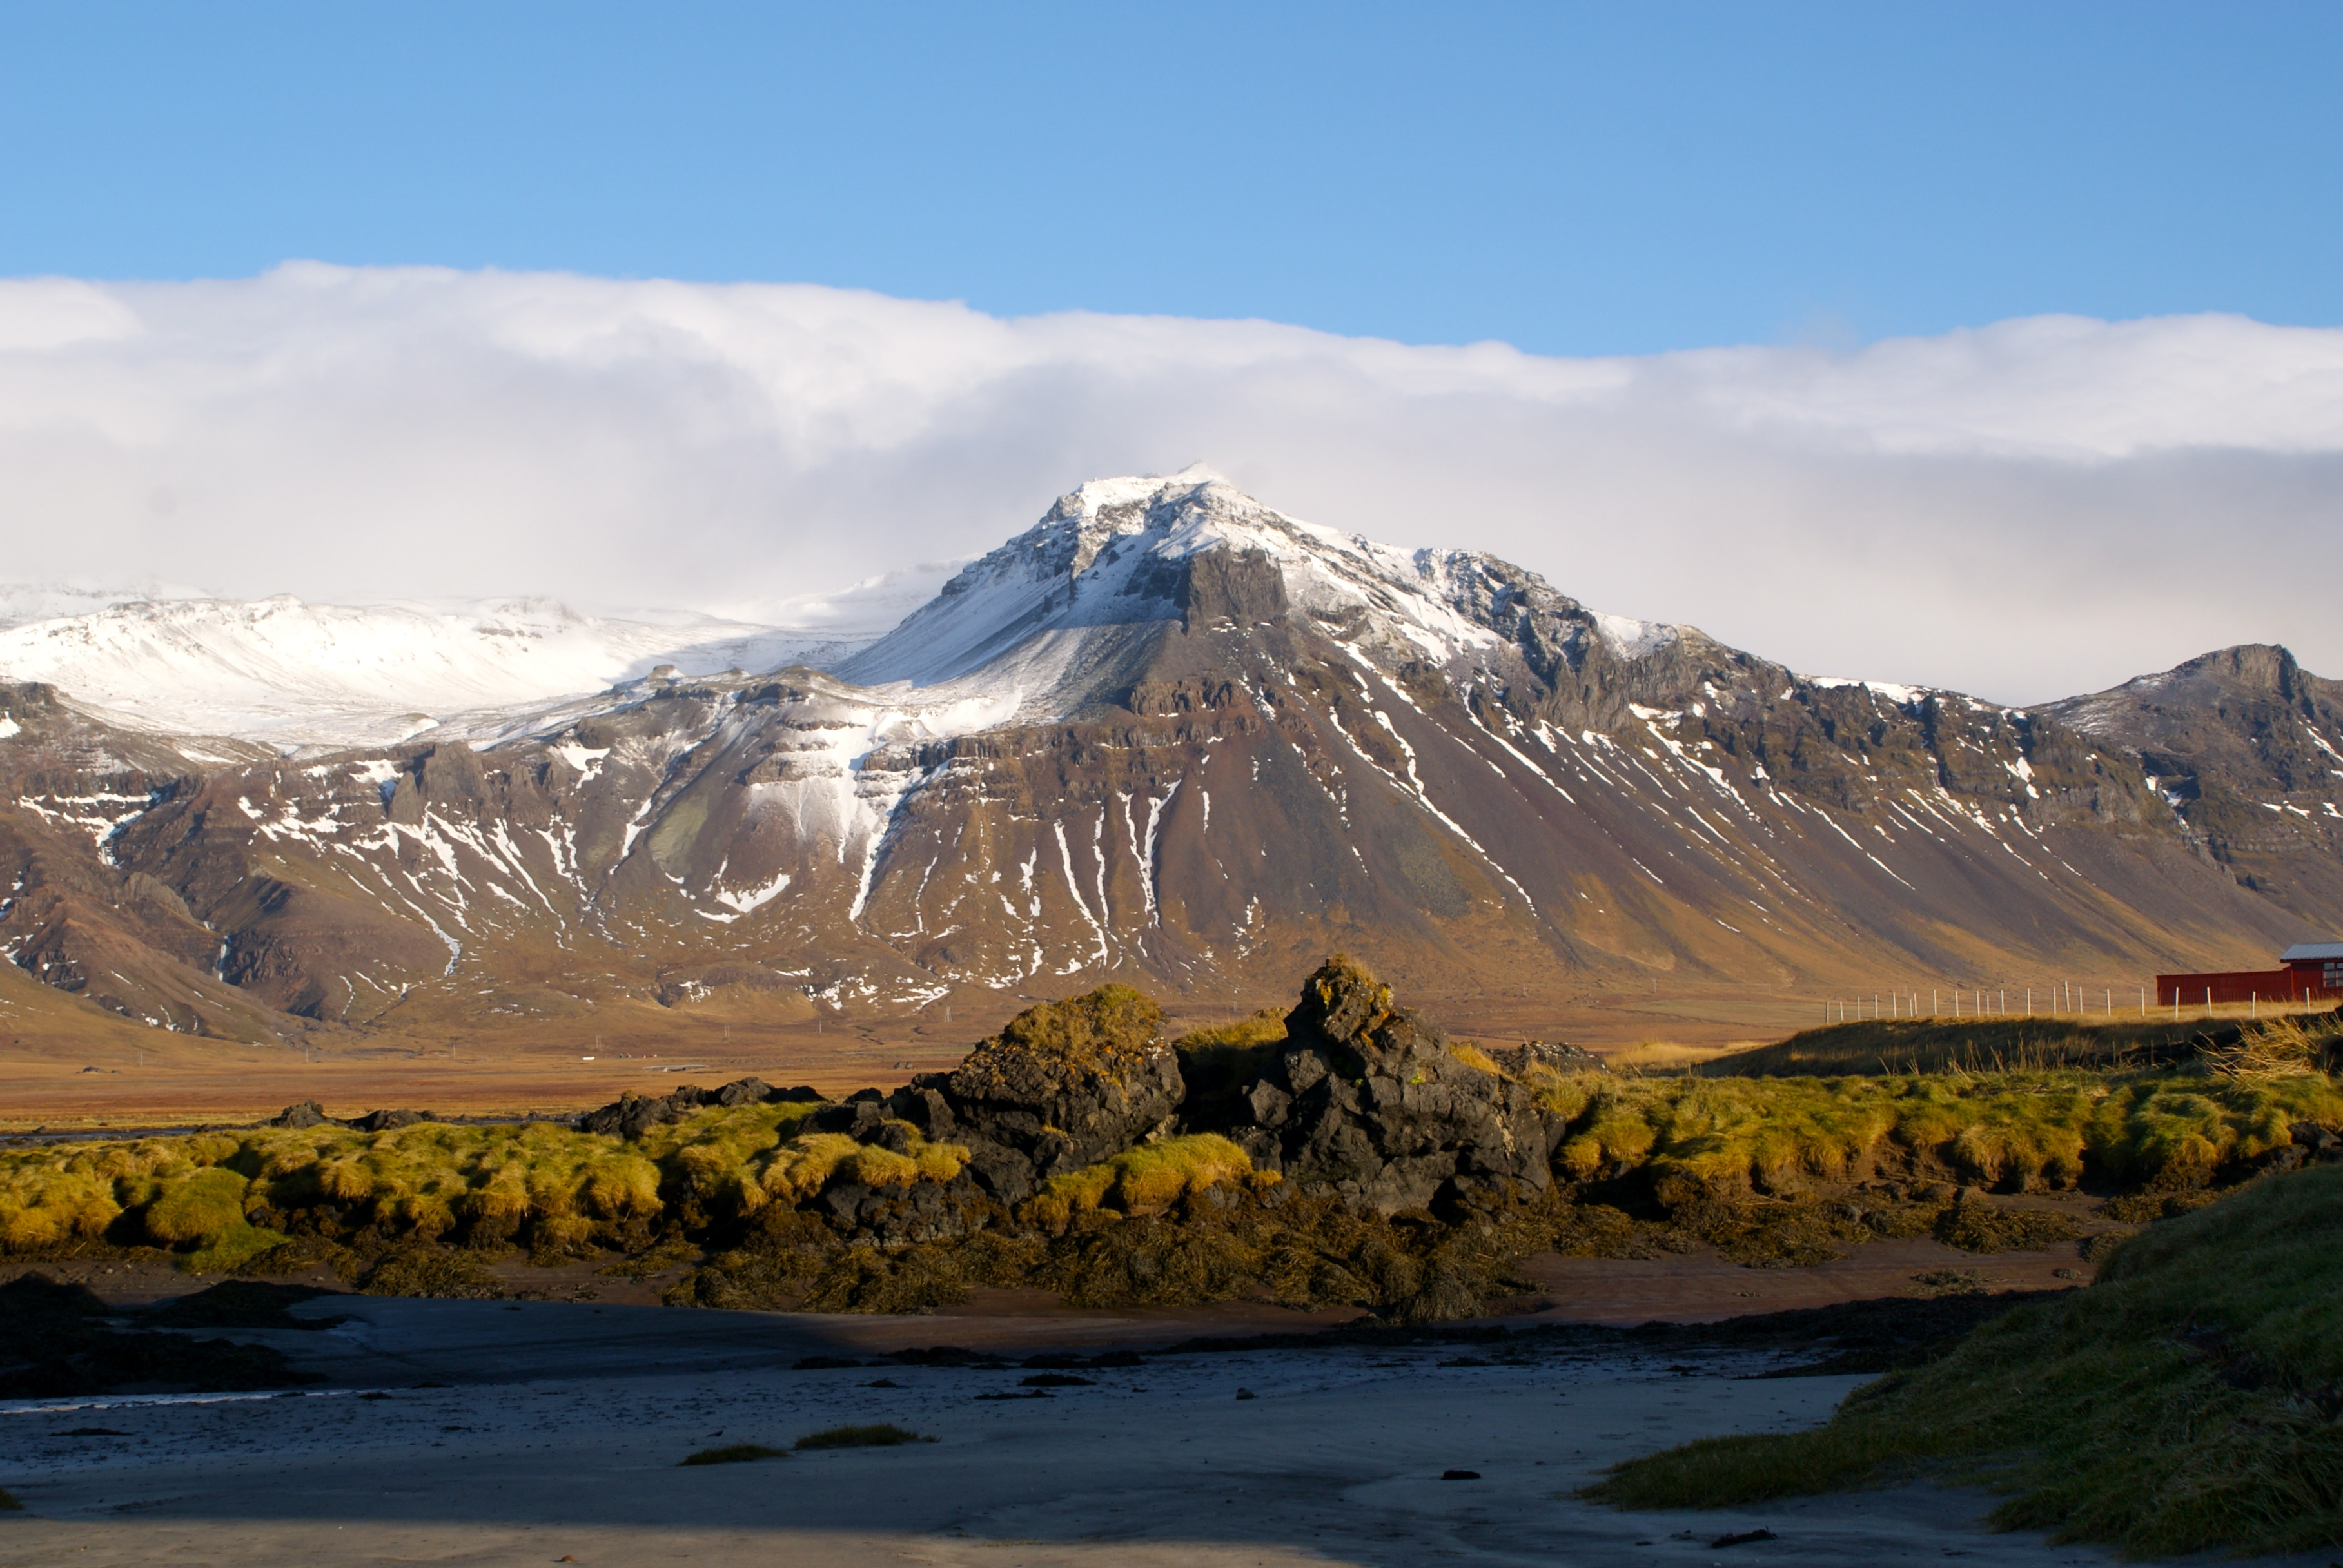 Download the full-sized image of Budir, Snaefellness Peninsula, Iceland